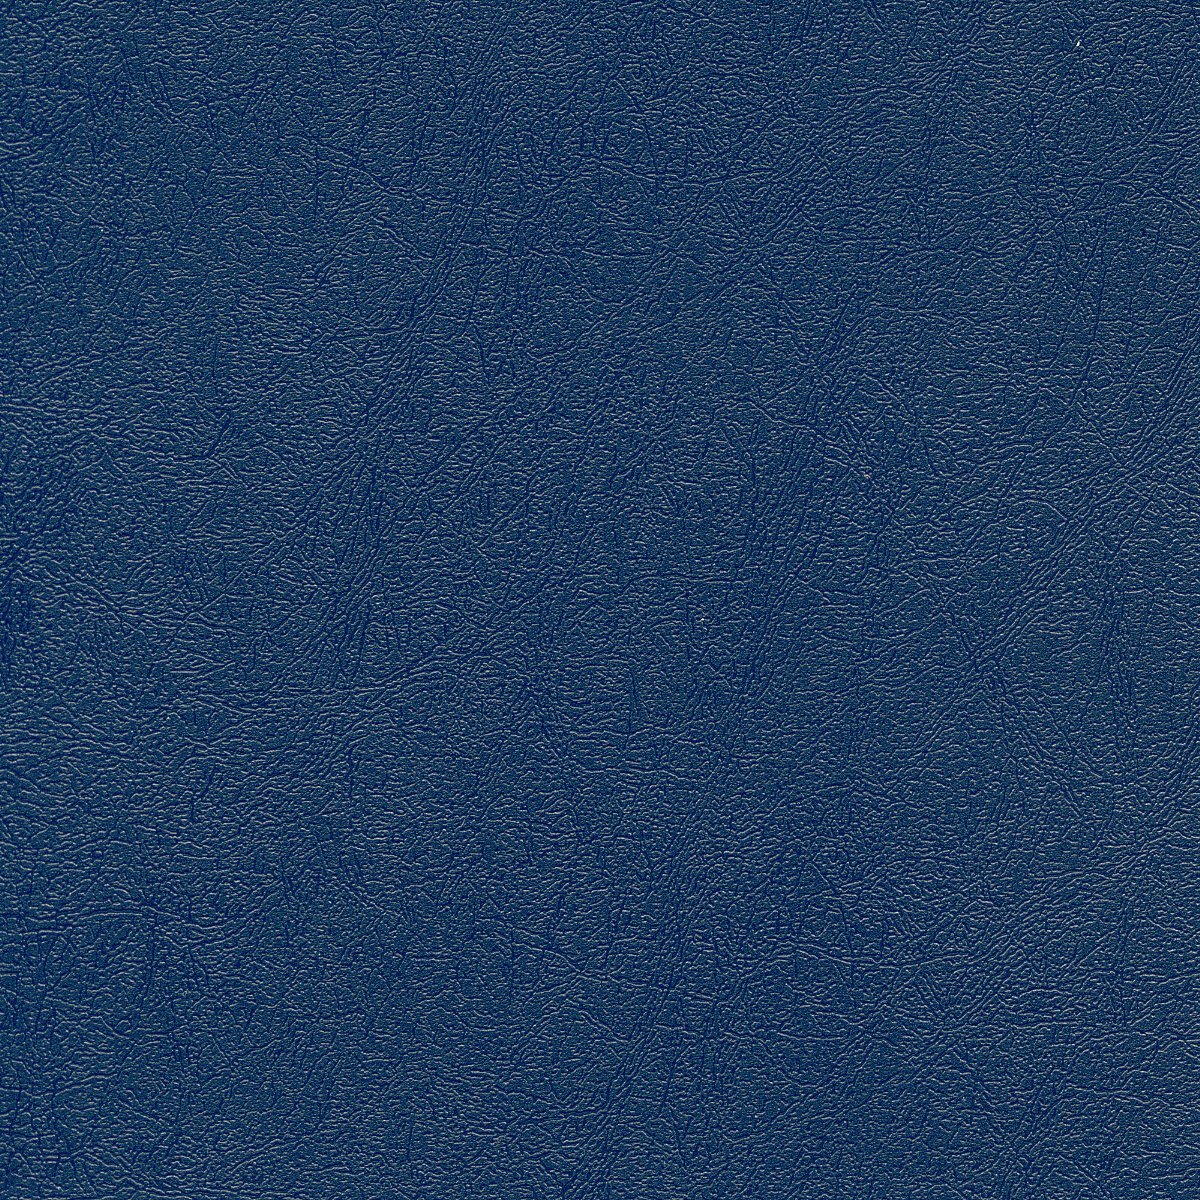 Navy Blue Leather Embossed Plastic Binding Covers And